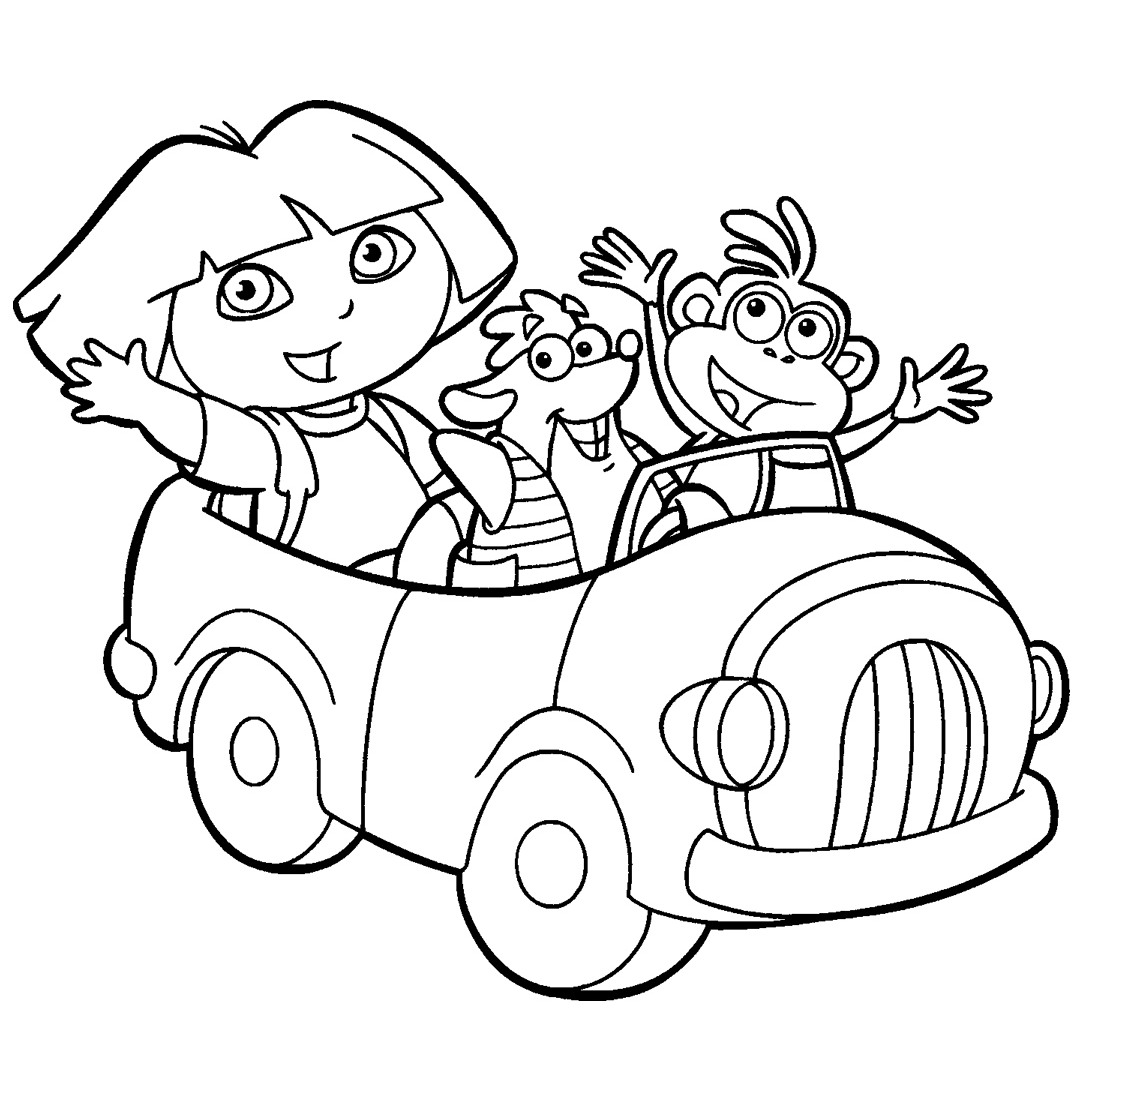 coloring pages with dora - photo#7